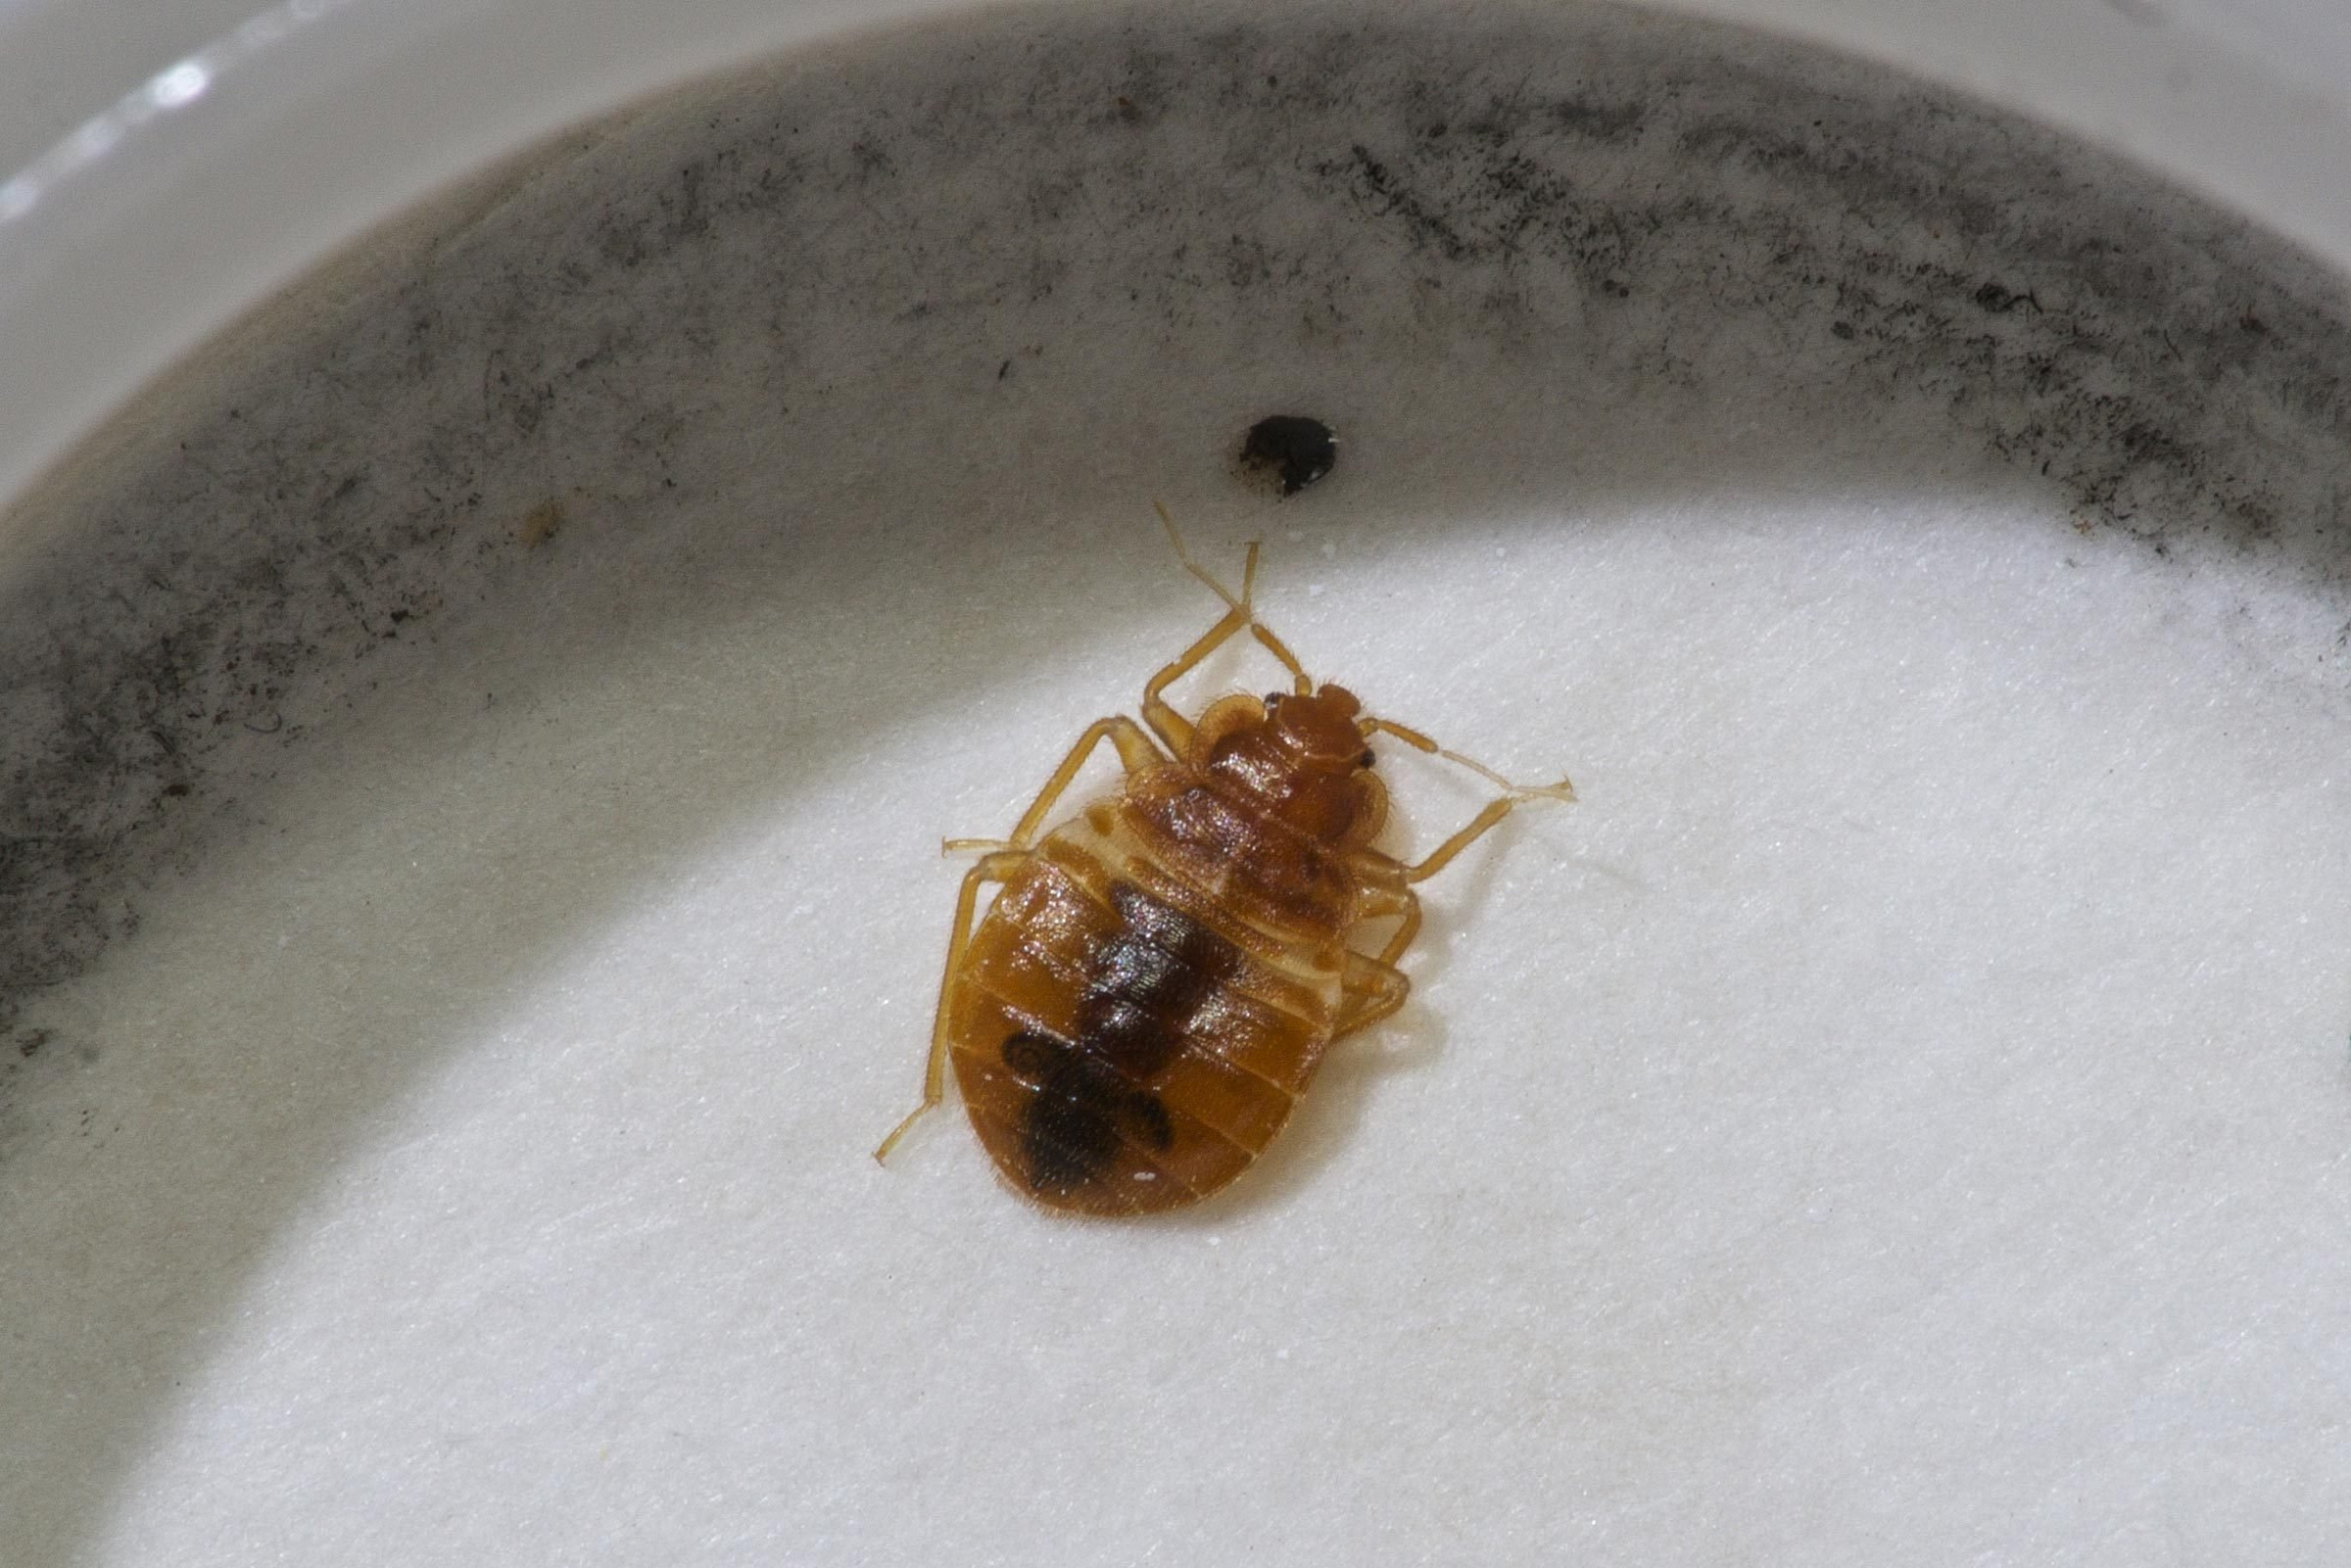 pictures of bed bugs - HD2400×1601